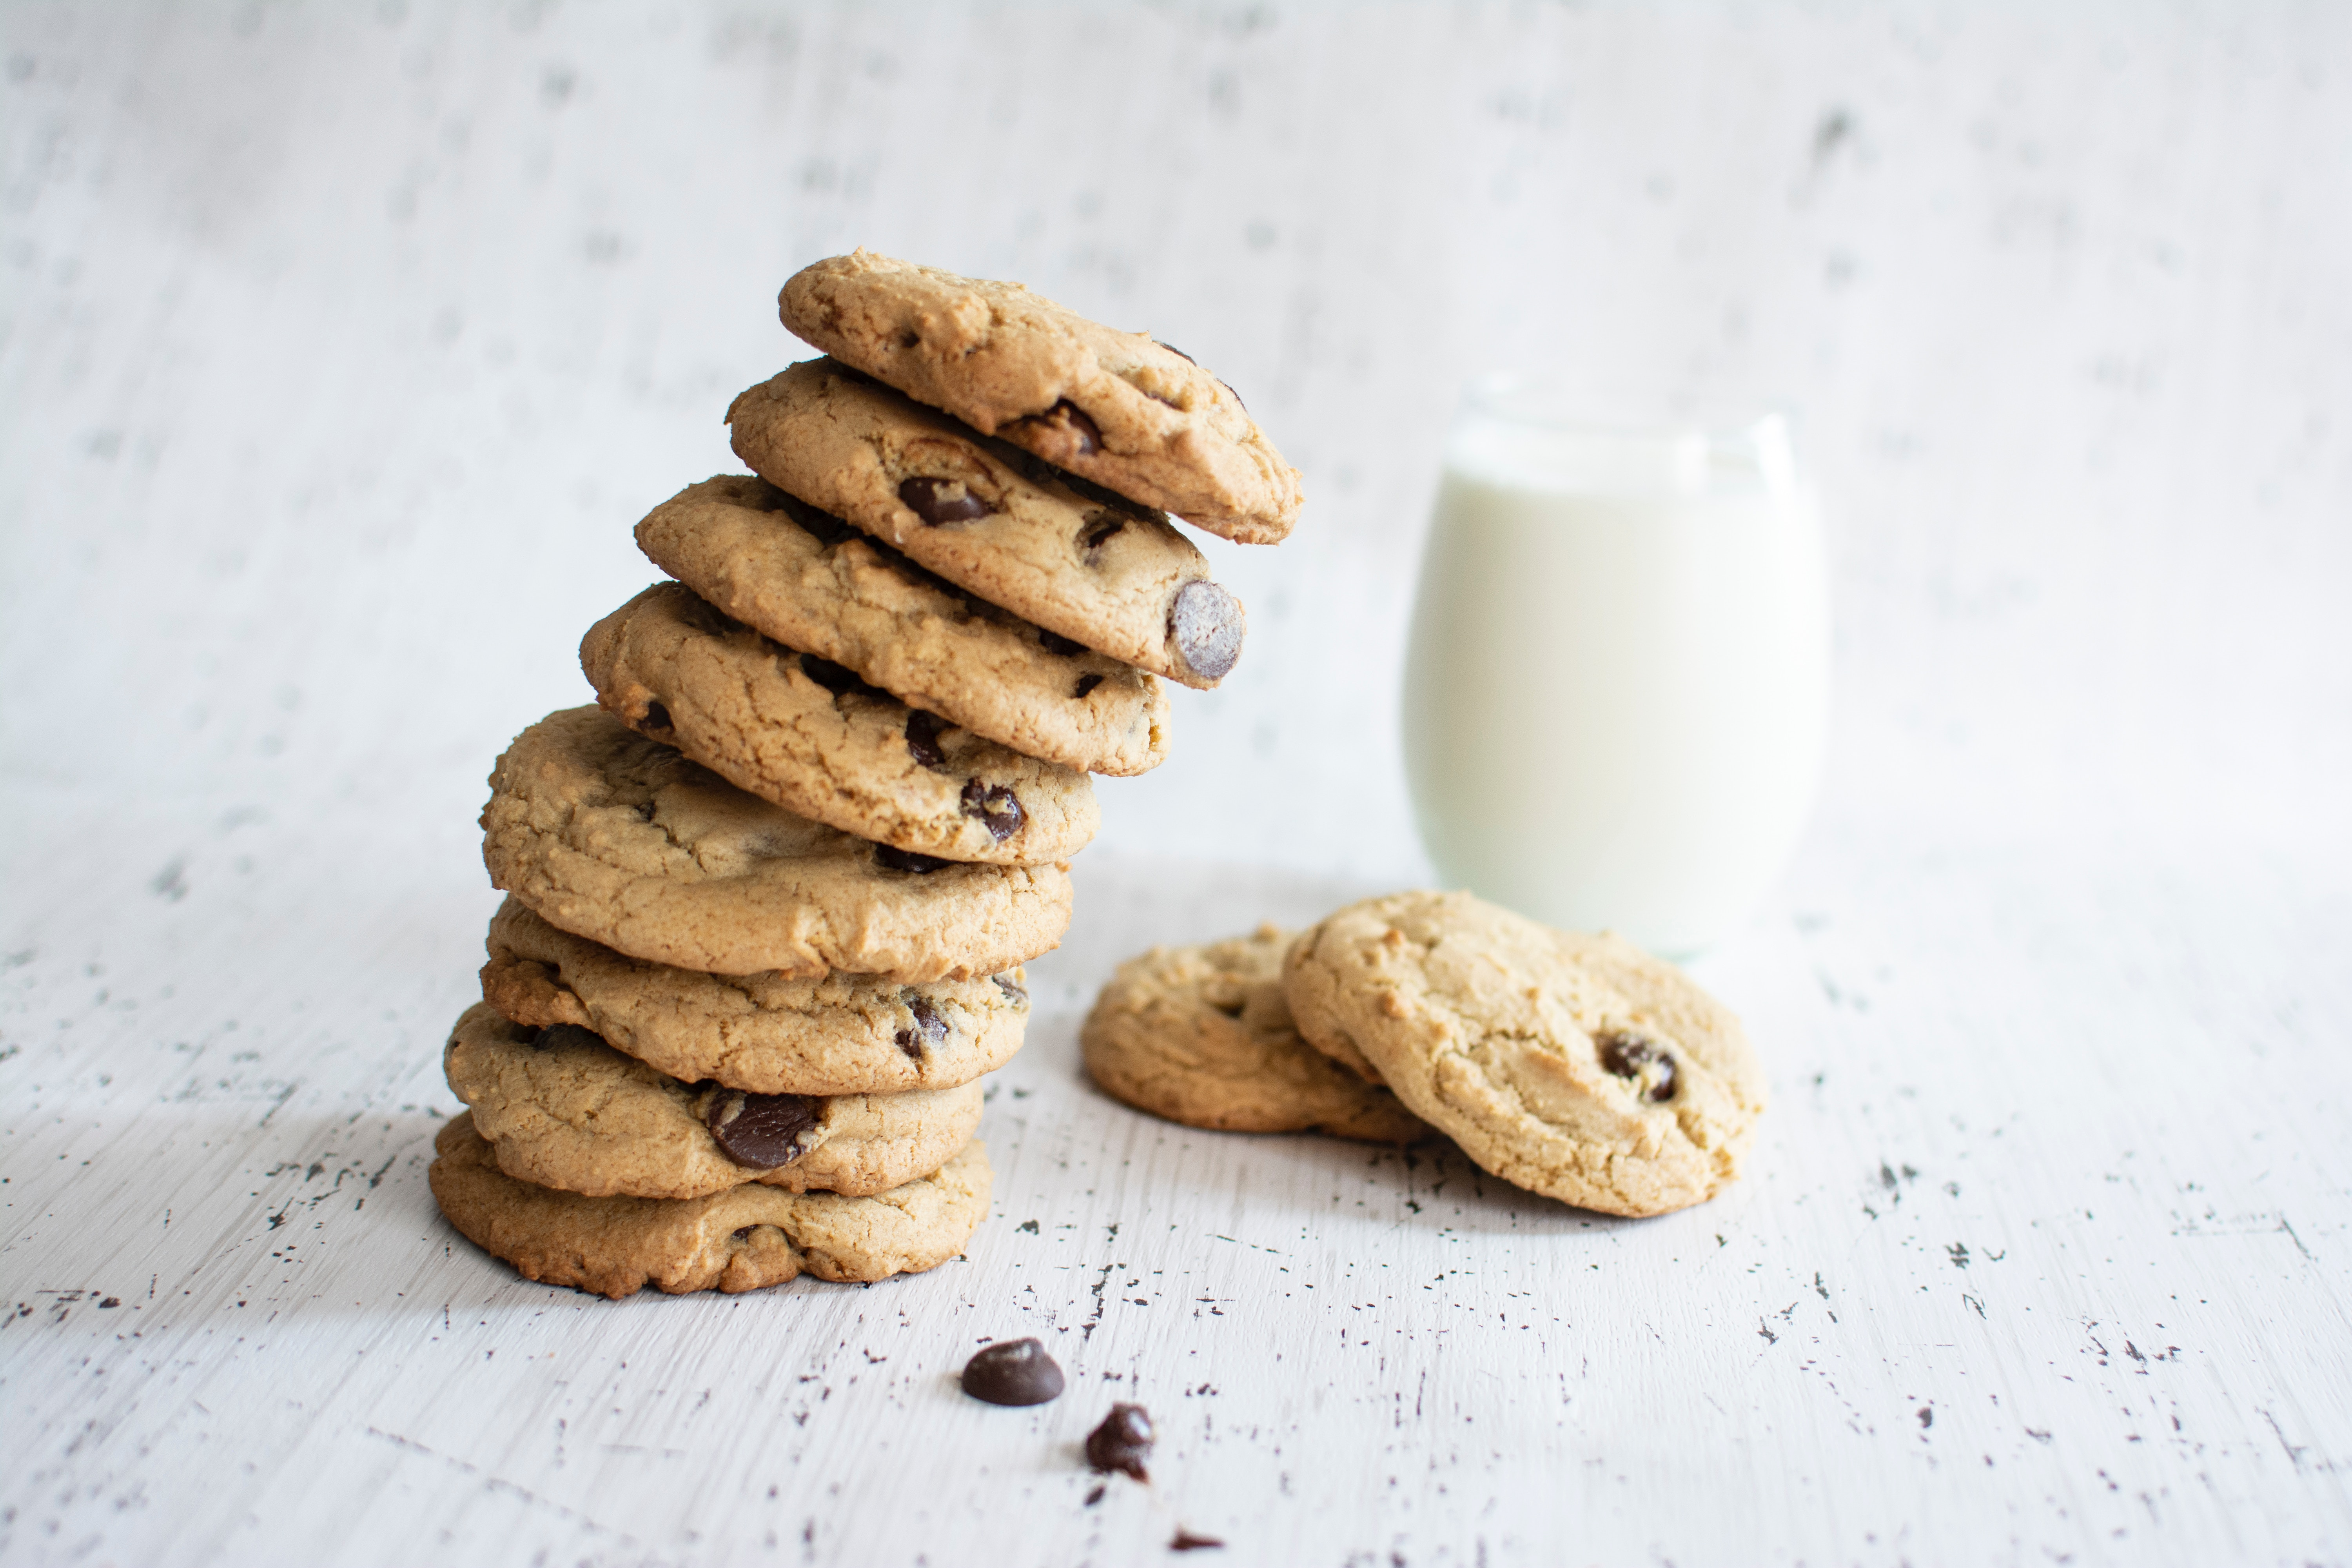 A leaning stack of chocolate chip cookies beside a glass of milk